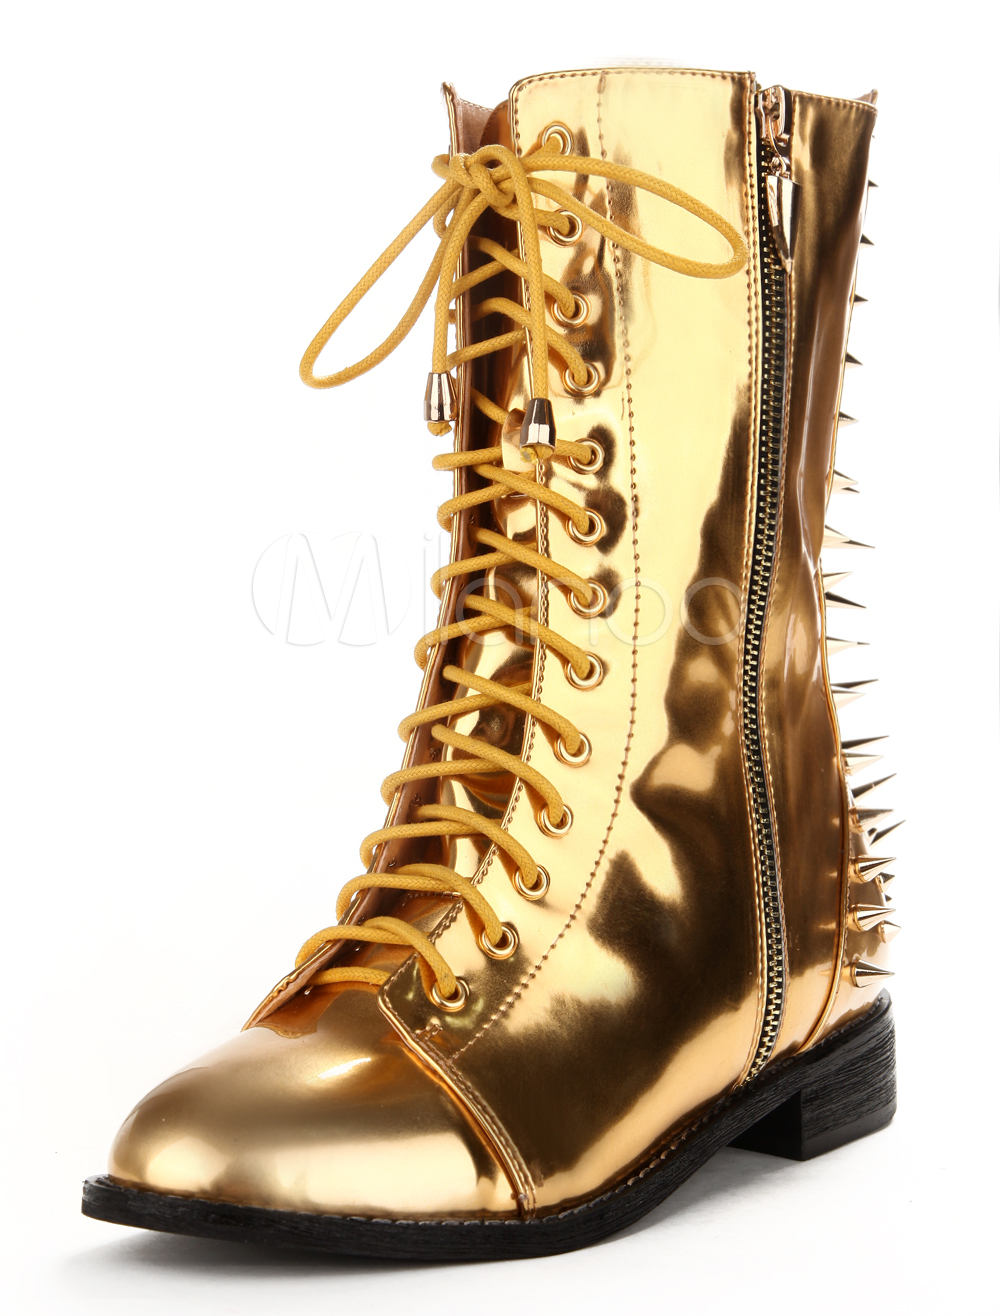 Attractive Gold Spikes Metallic PU Leather Lace Up Boots For Women ...